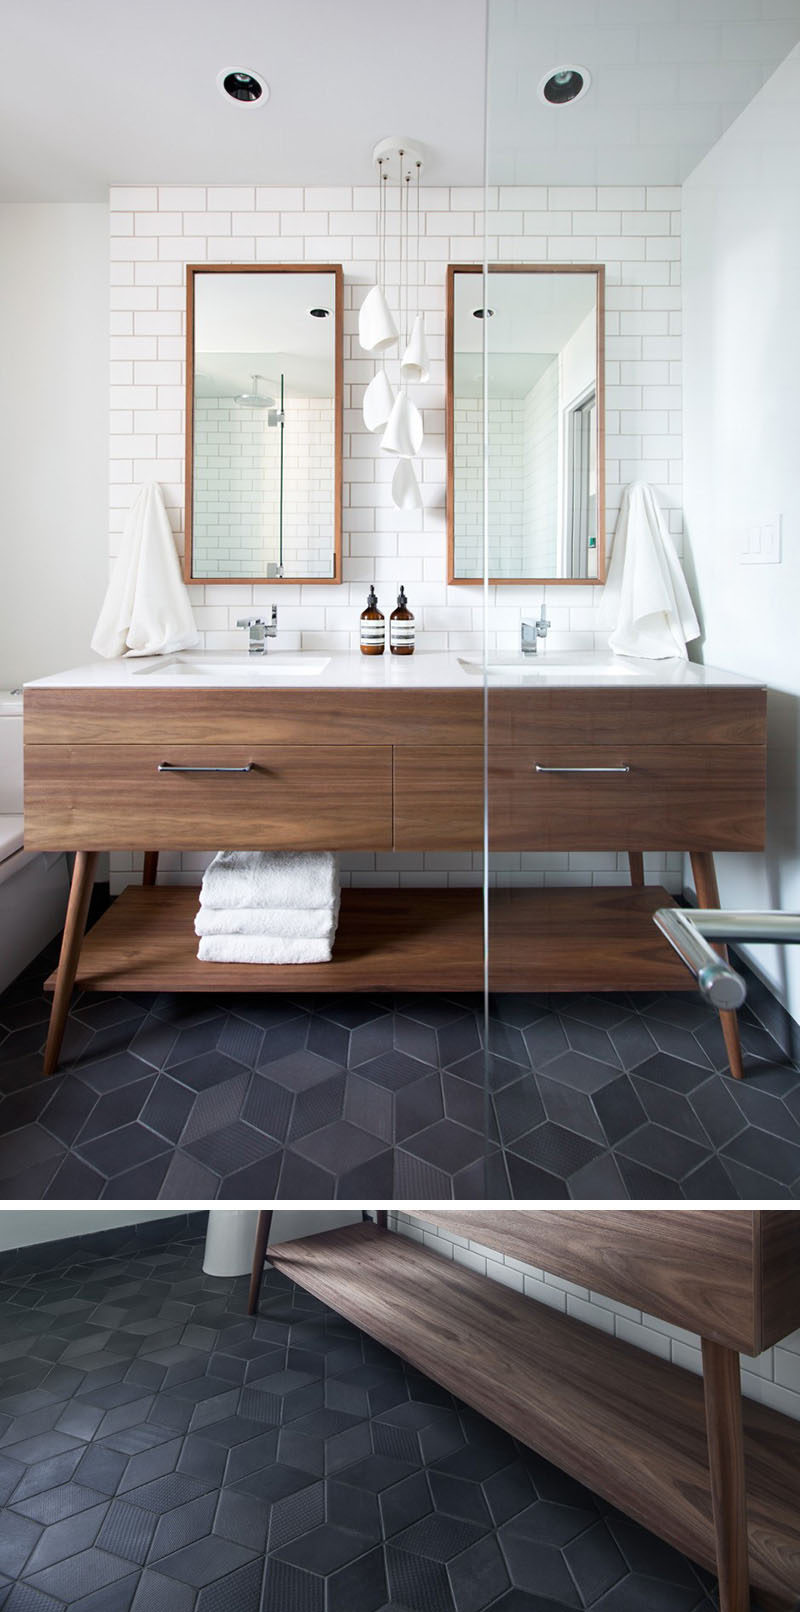 8 Examples Of Tile Flooring With Geometric Patterns // Dark textured diamond tiles make up the floor of the bathroom in this Vancouver apartment.